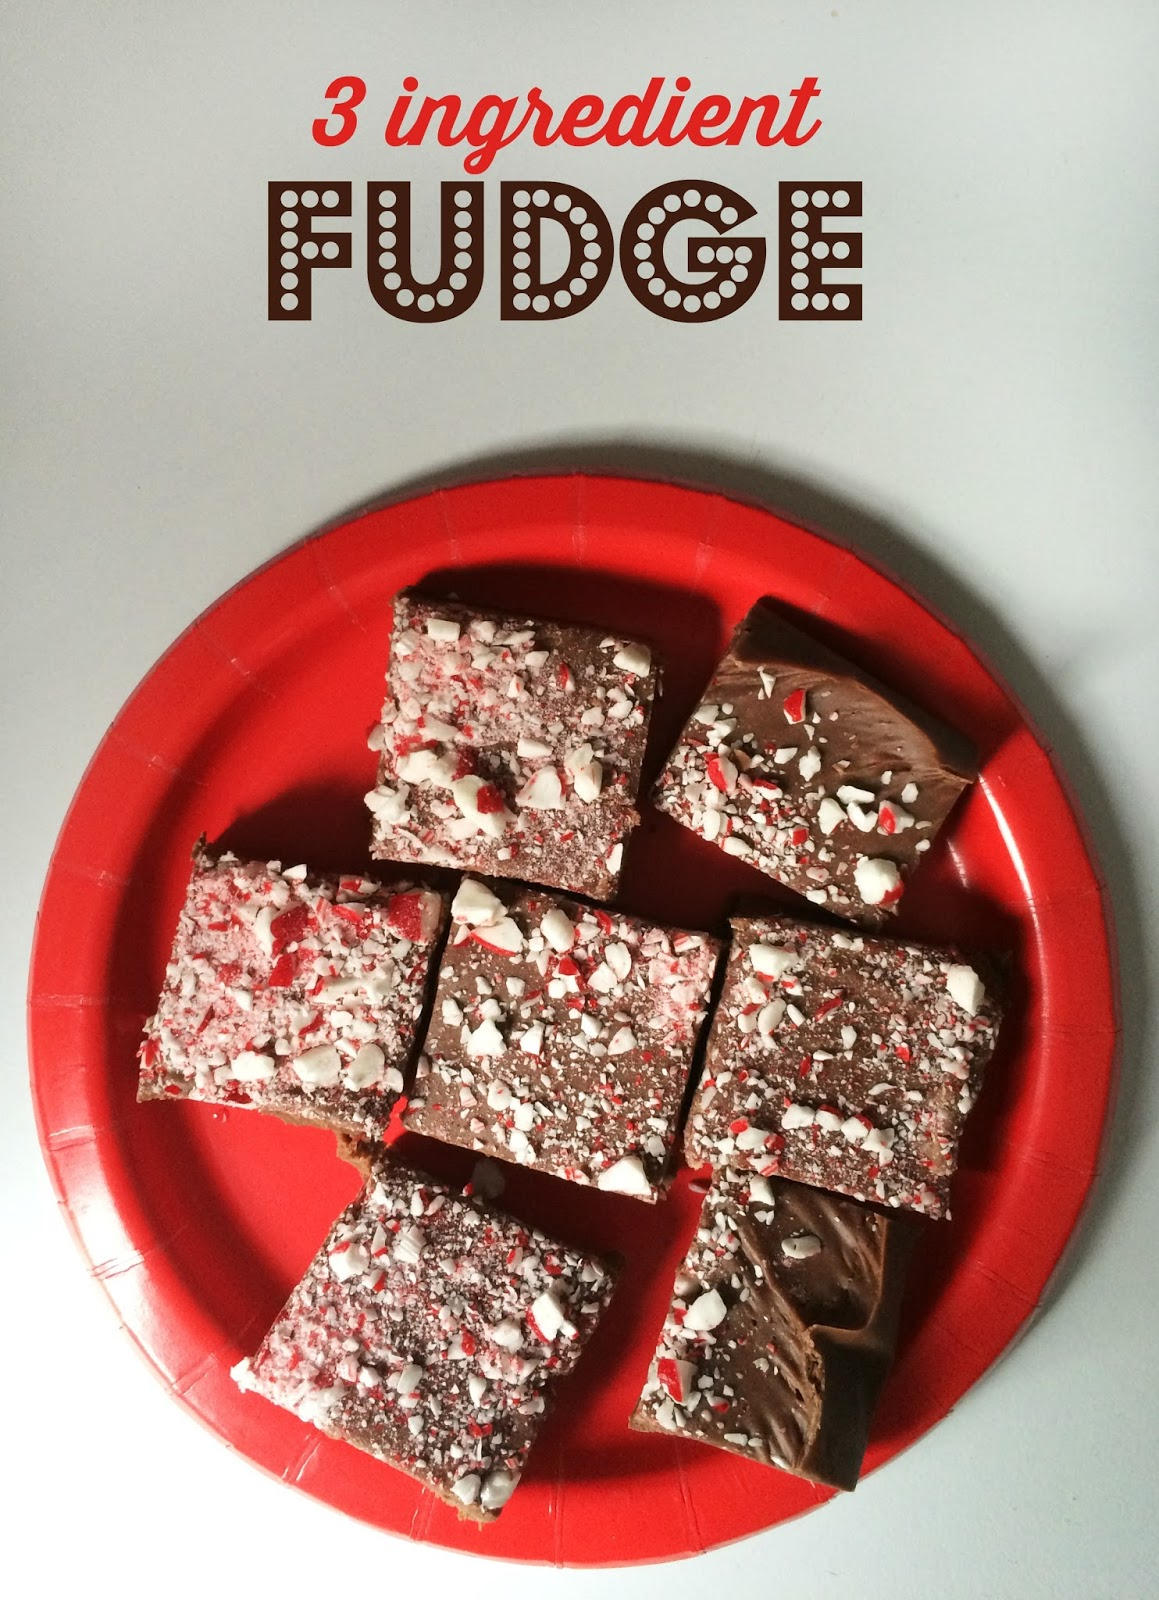 fudge, Christmas treat, chocolate, candy cane, treat, sugar